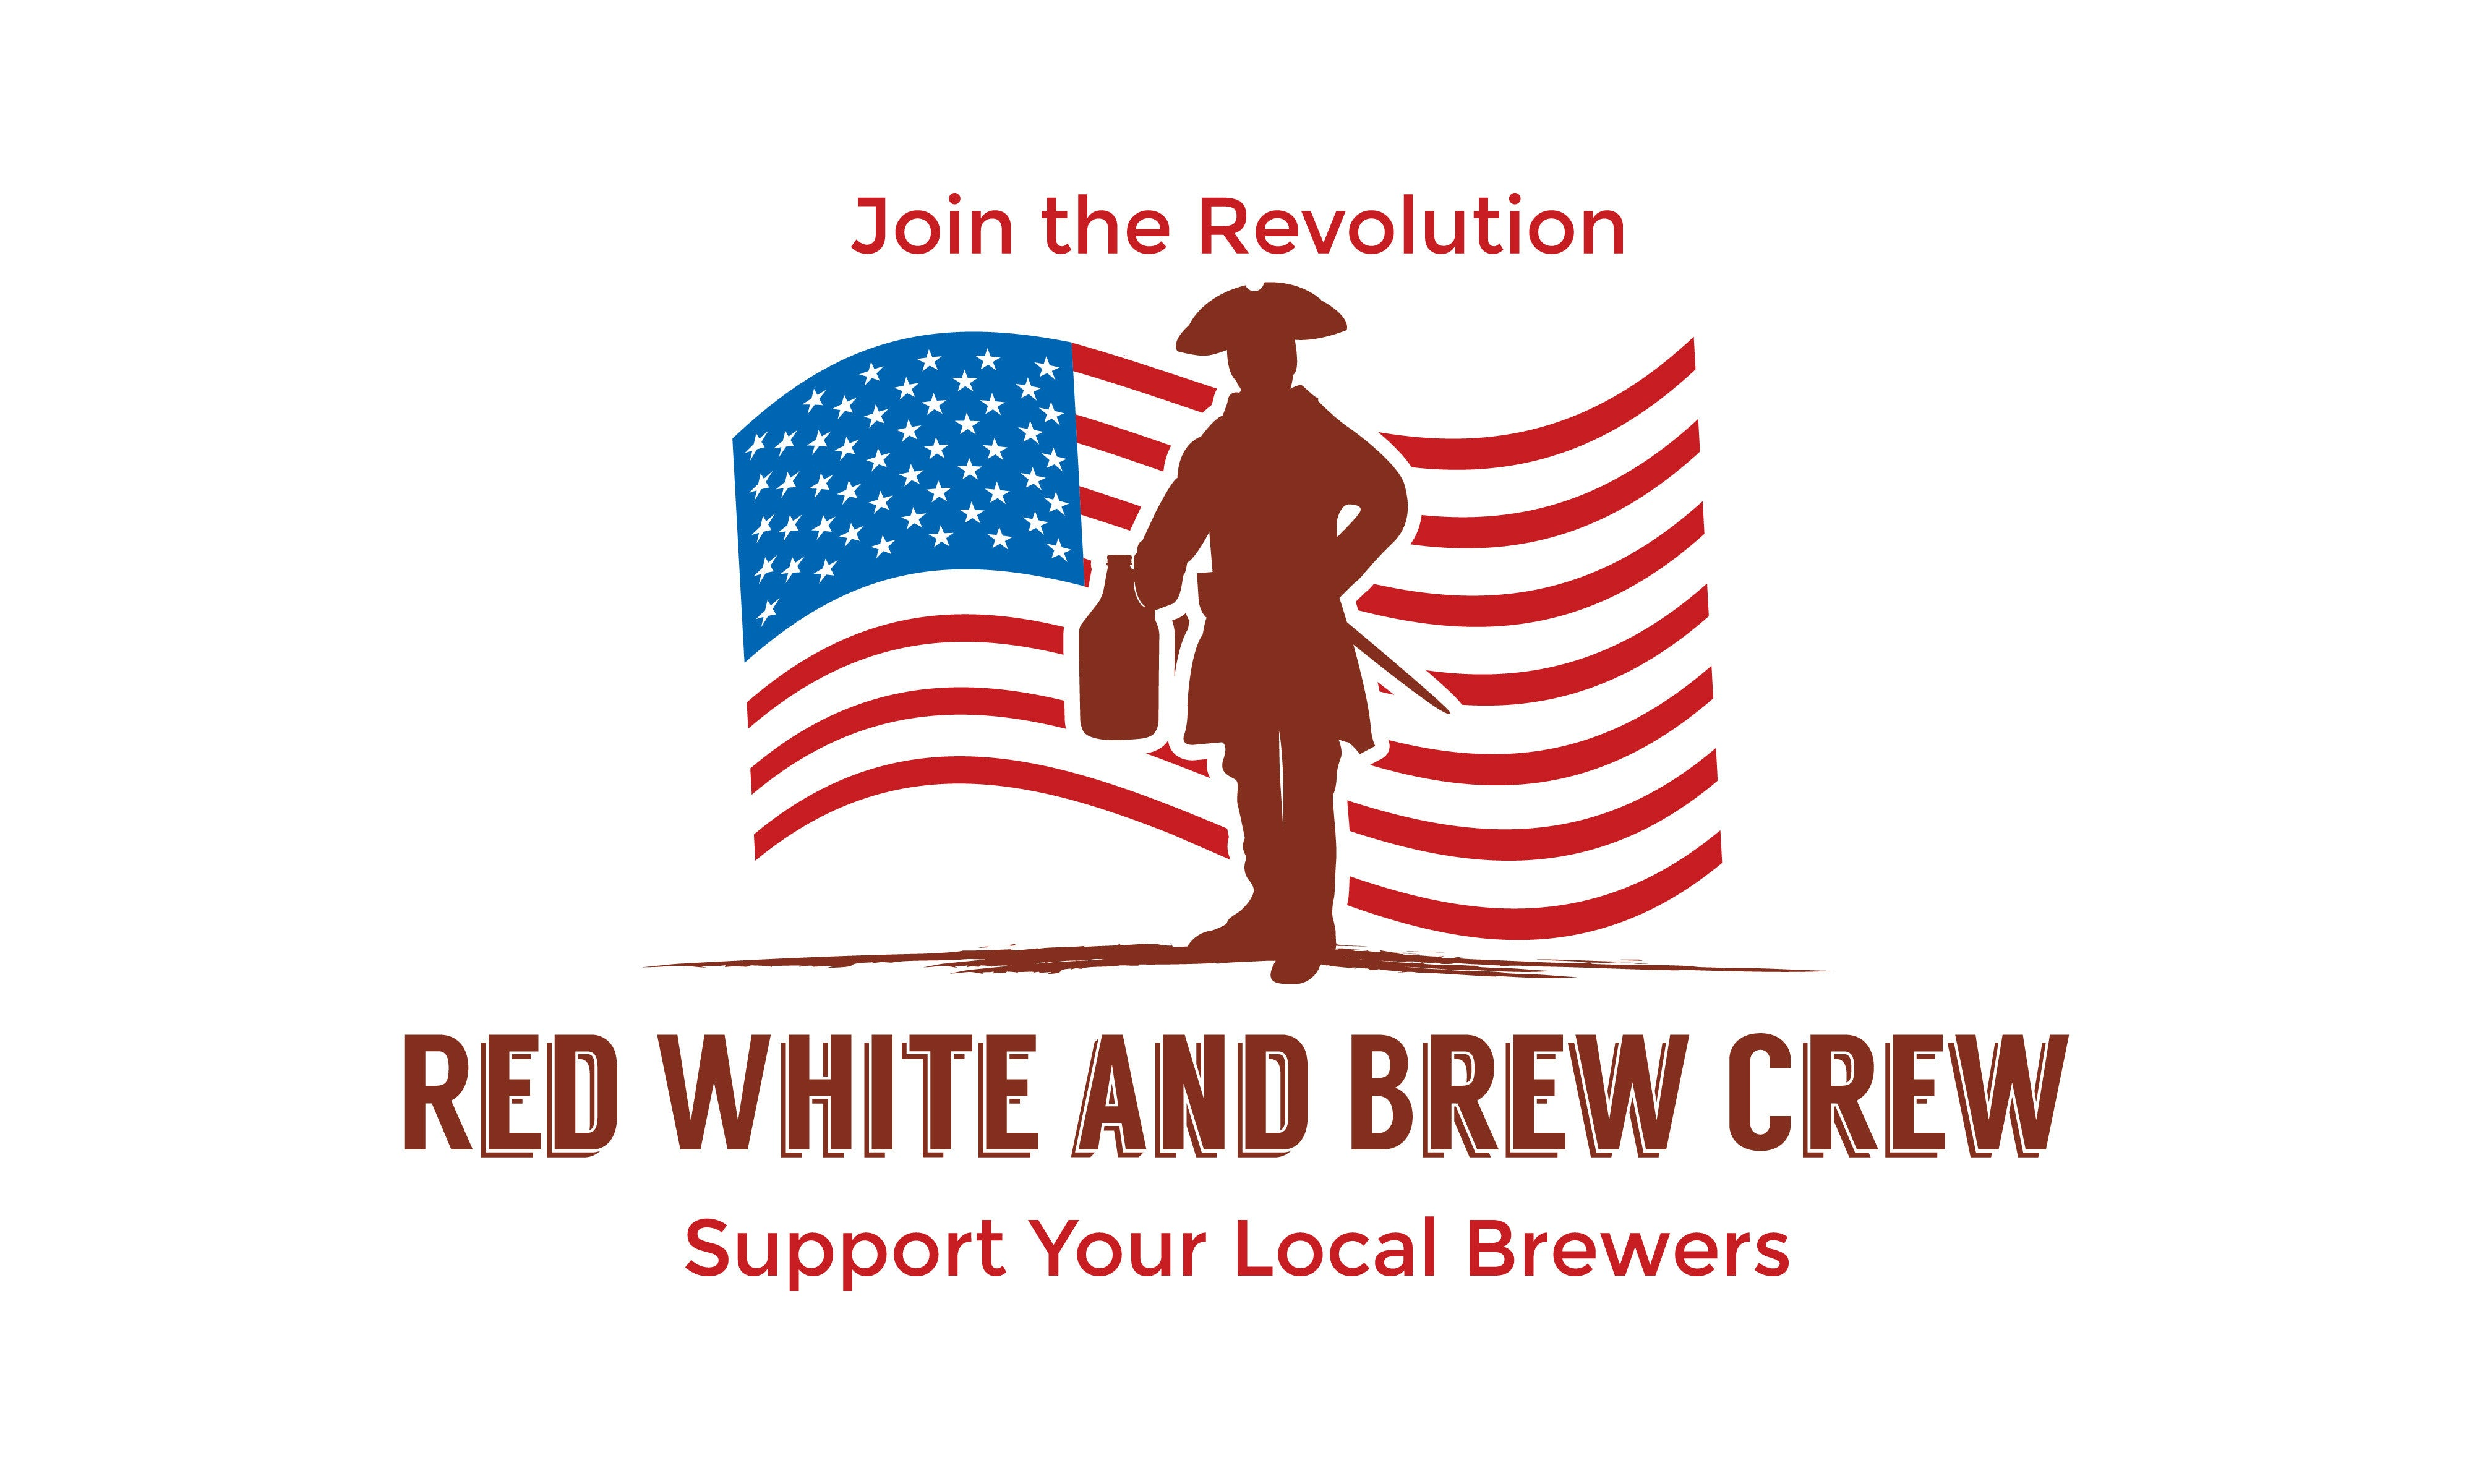 Red White and Brew Crew